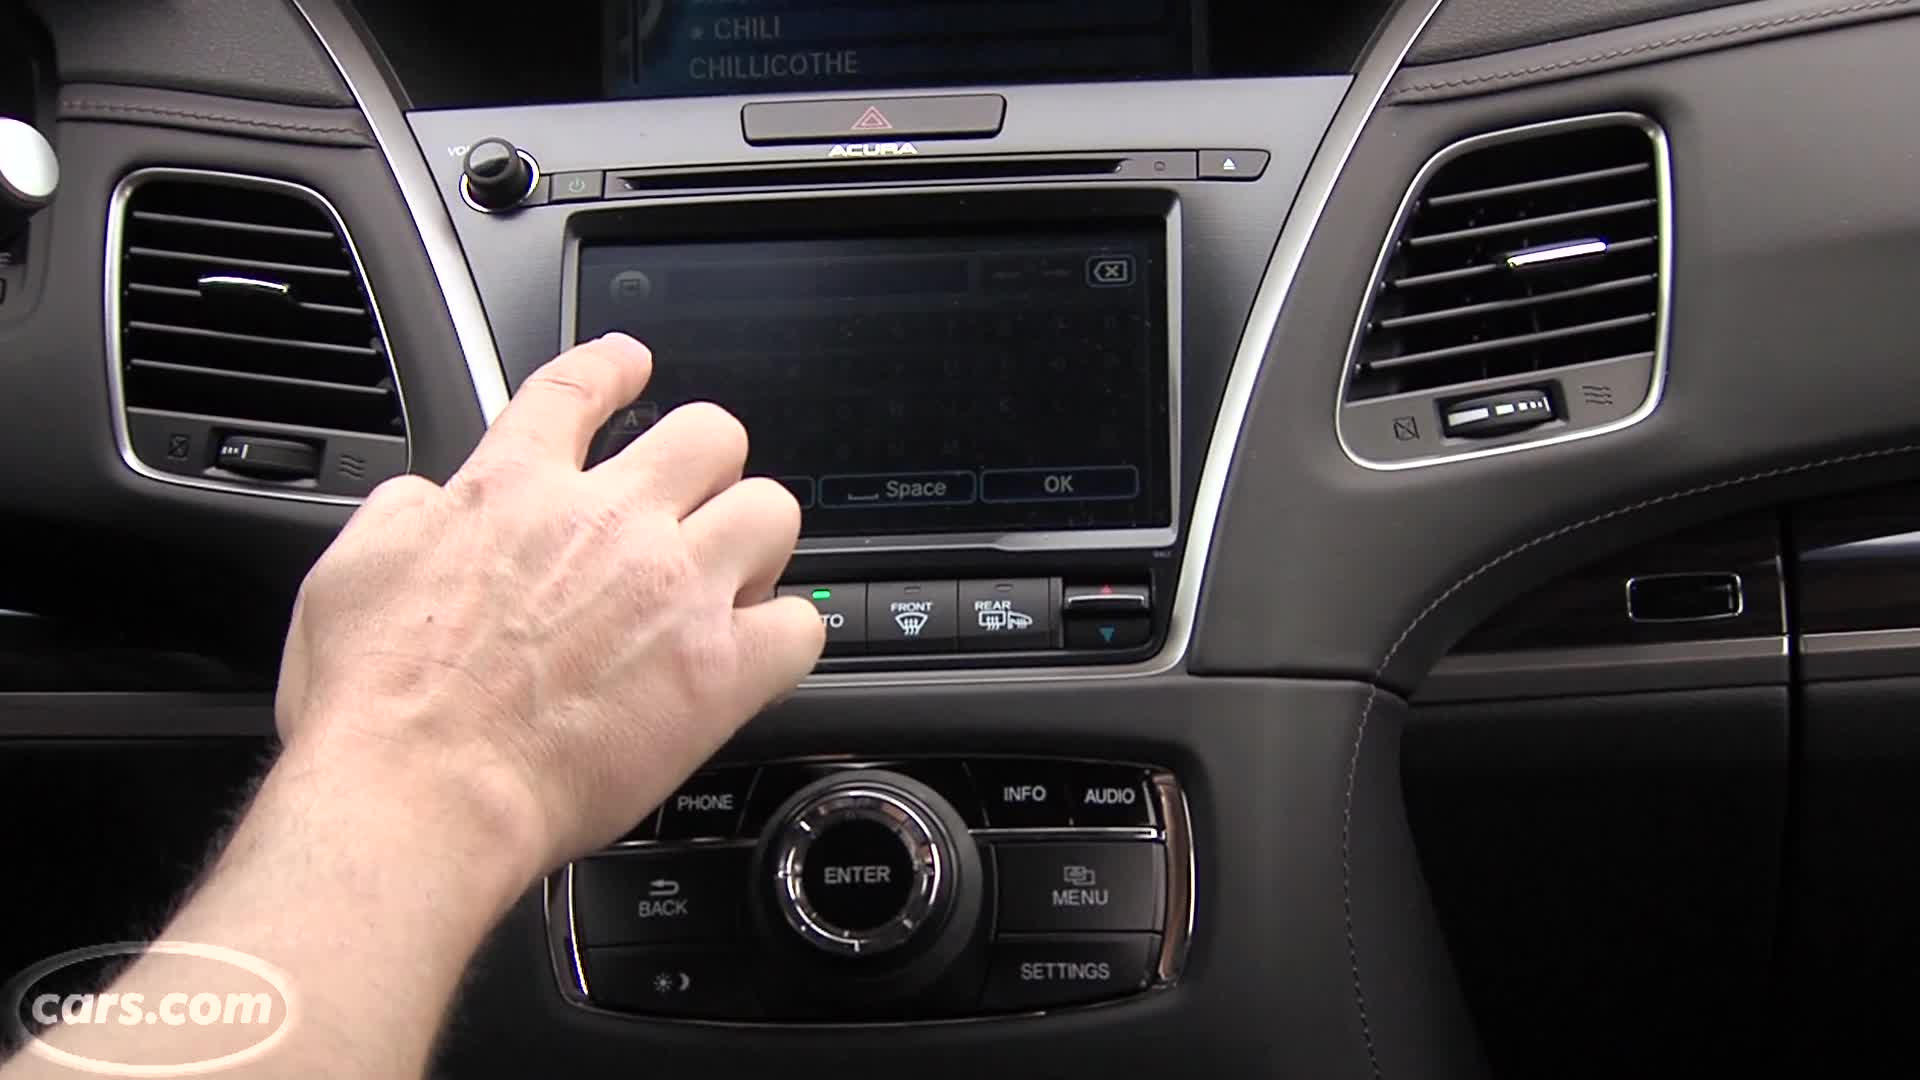 2014 Acura Rlx Expert Reviews Specs And Photos 2002 Tl Aftermarket Radio